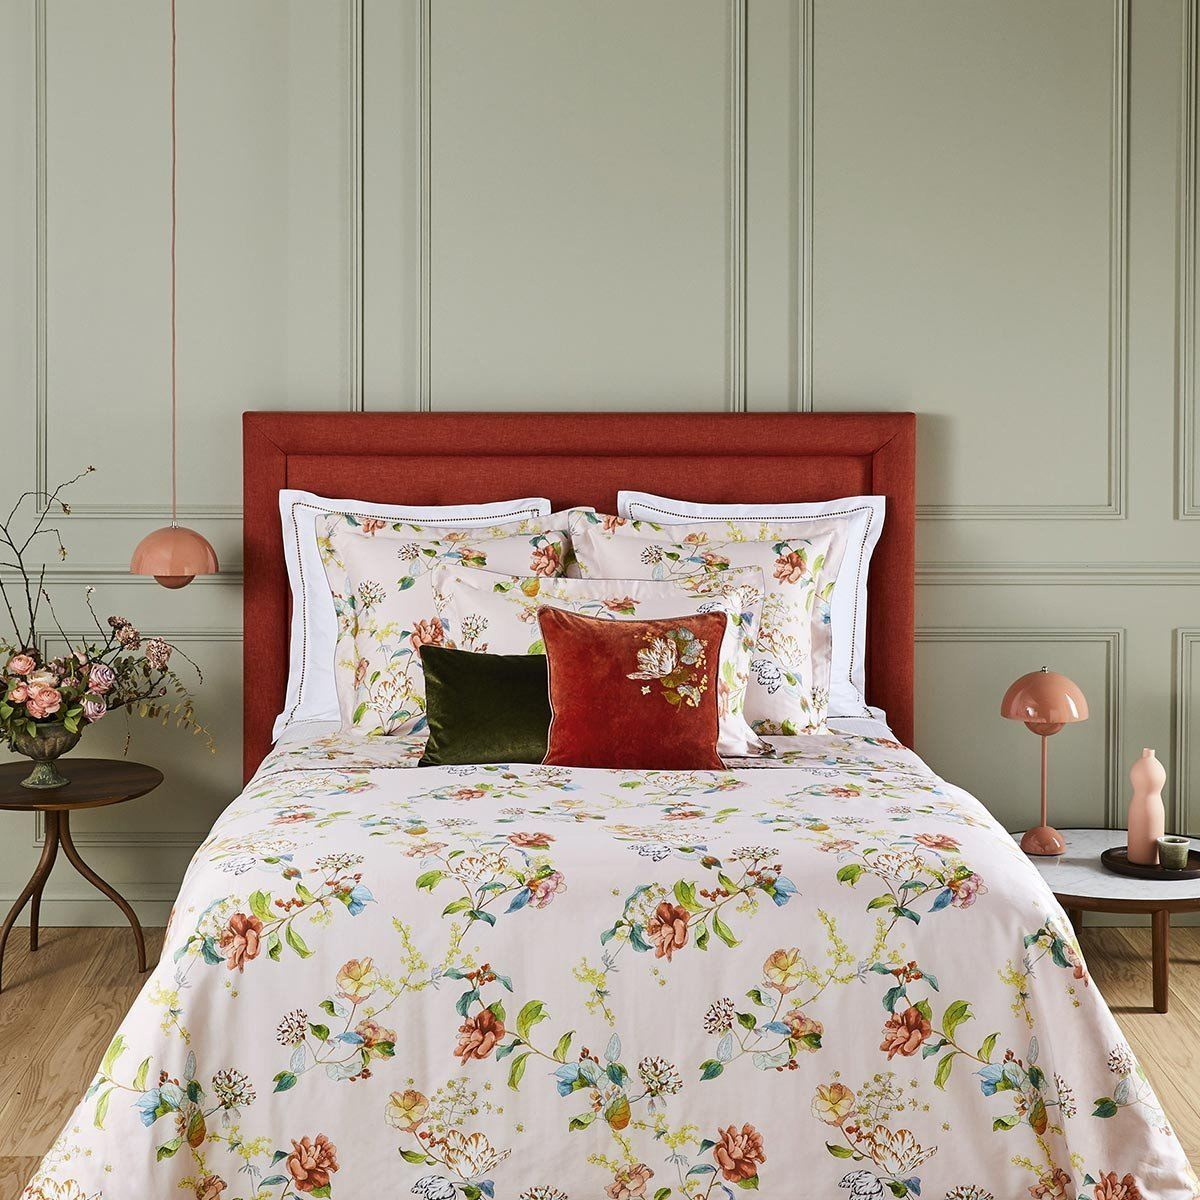 Bagatelle Bedding by Yves Delorme | Fig Fine Linens and Home